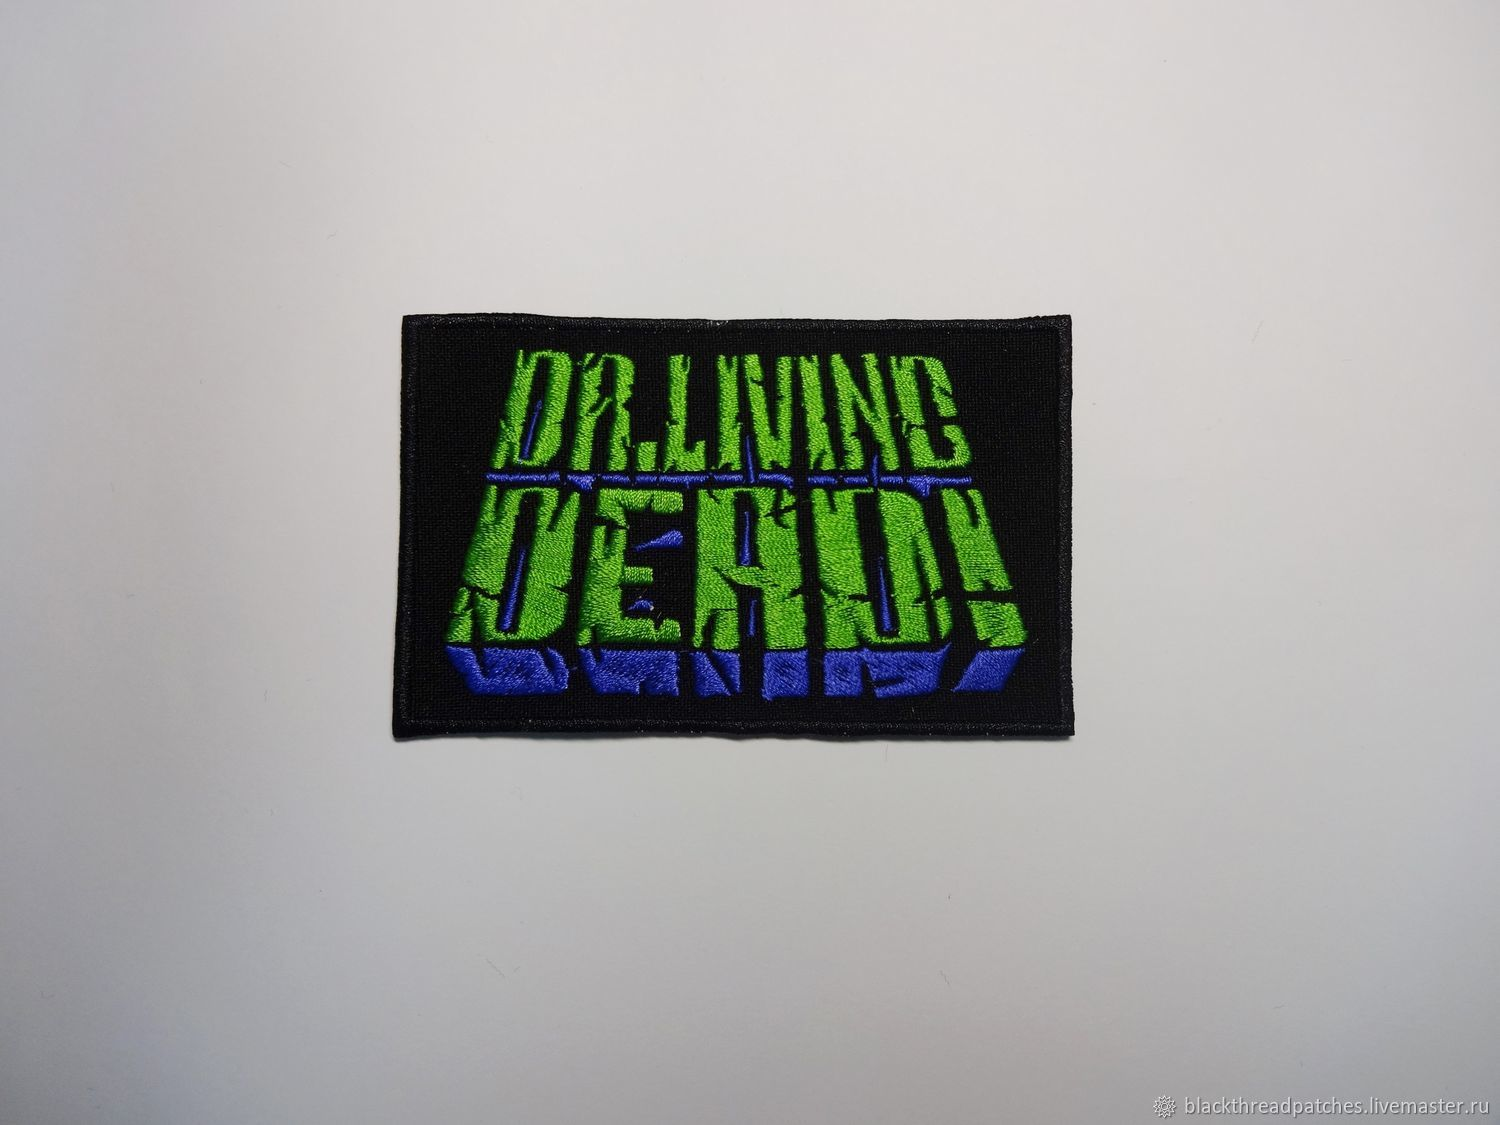 Dr. Living Dead! patch, Patches, St. Petersburg,  Фото №1